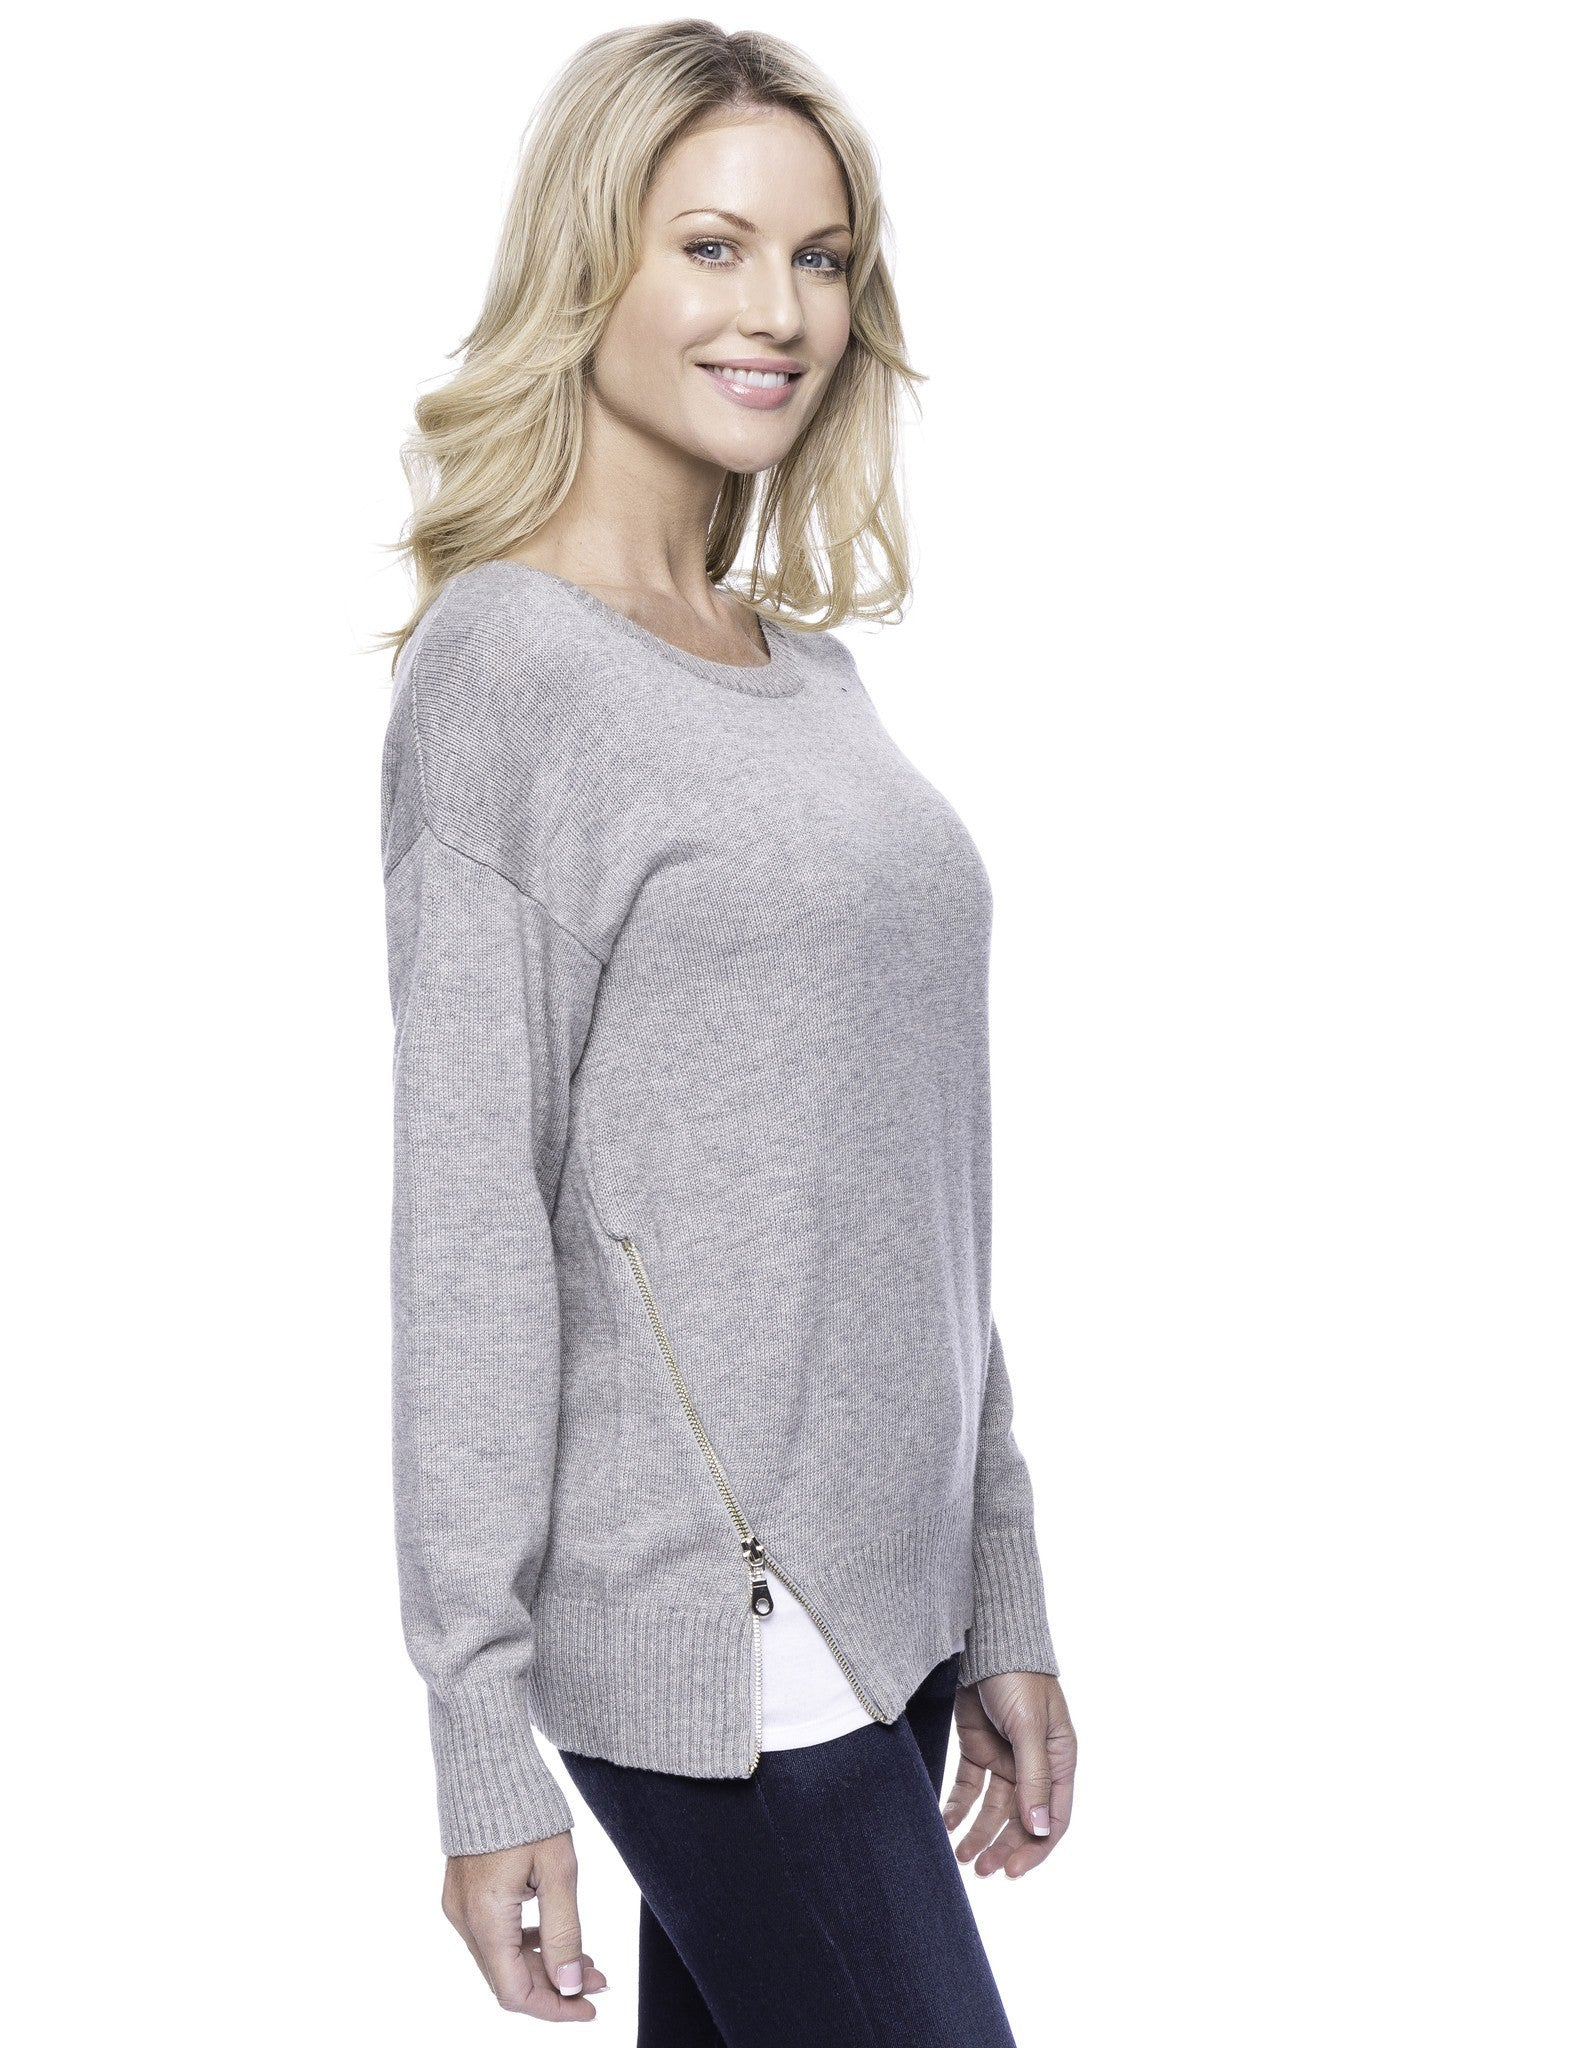 Tocco Reale Women's Cashmere Blend Crew Neck Sweater with Side Zip - Heather Grey